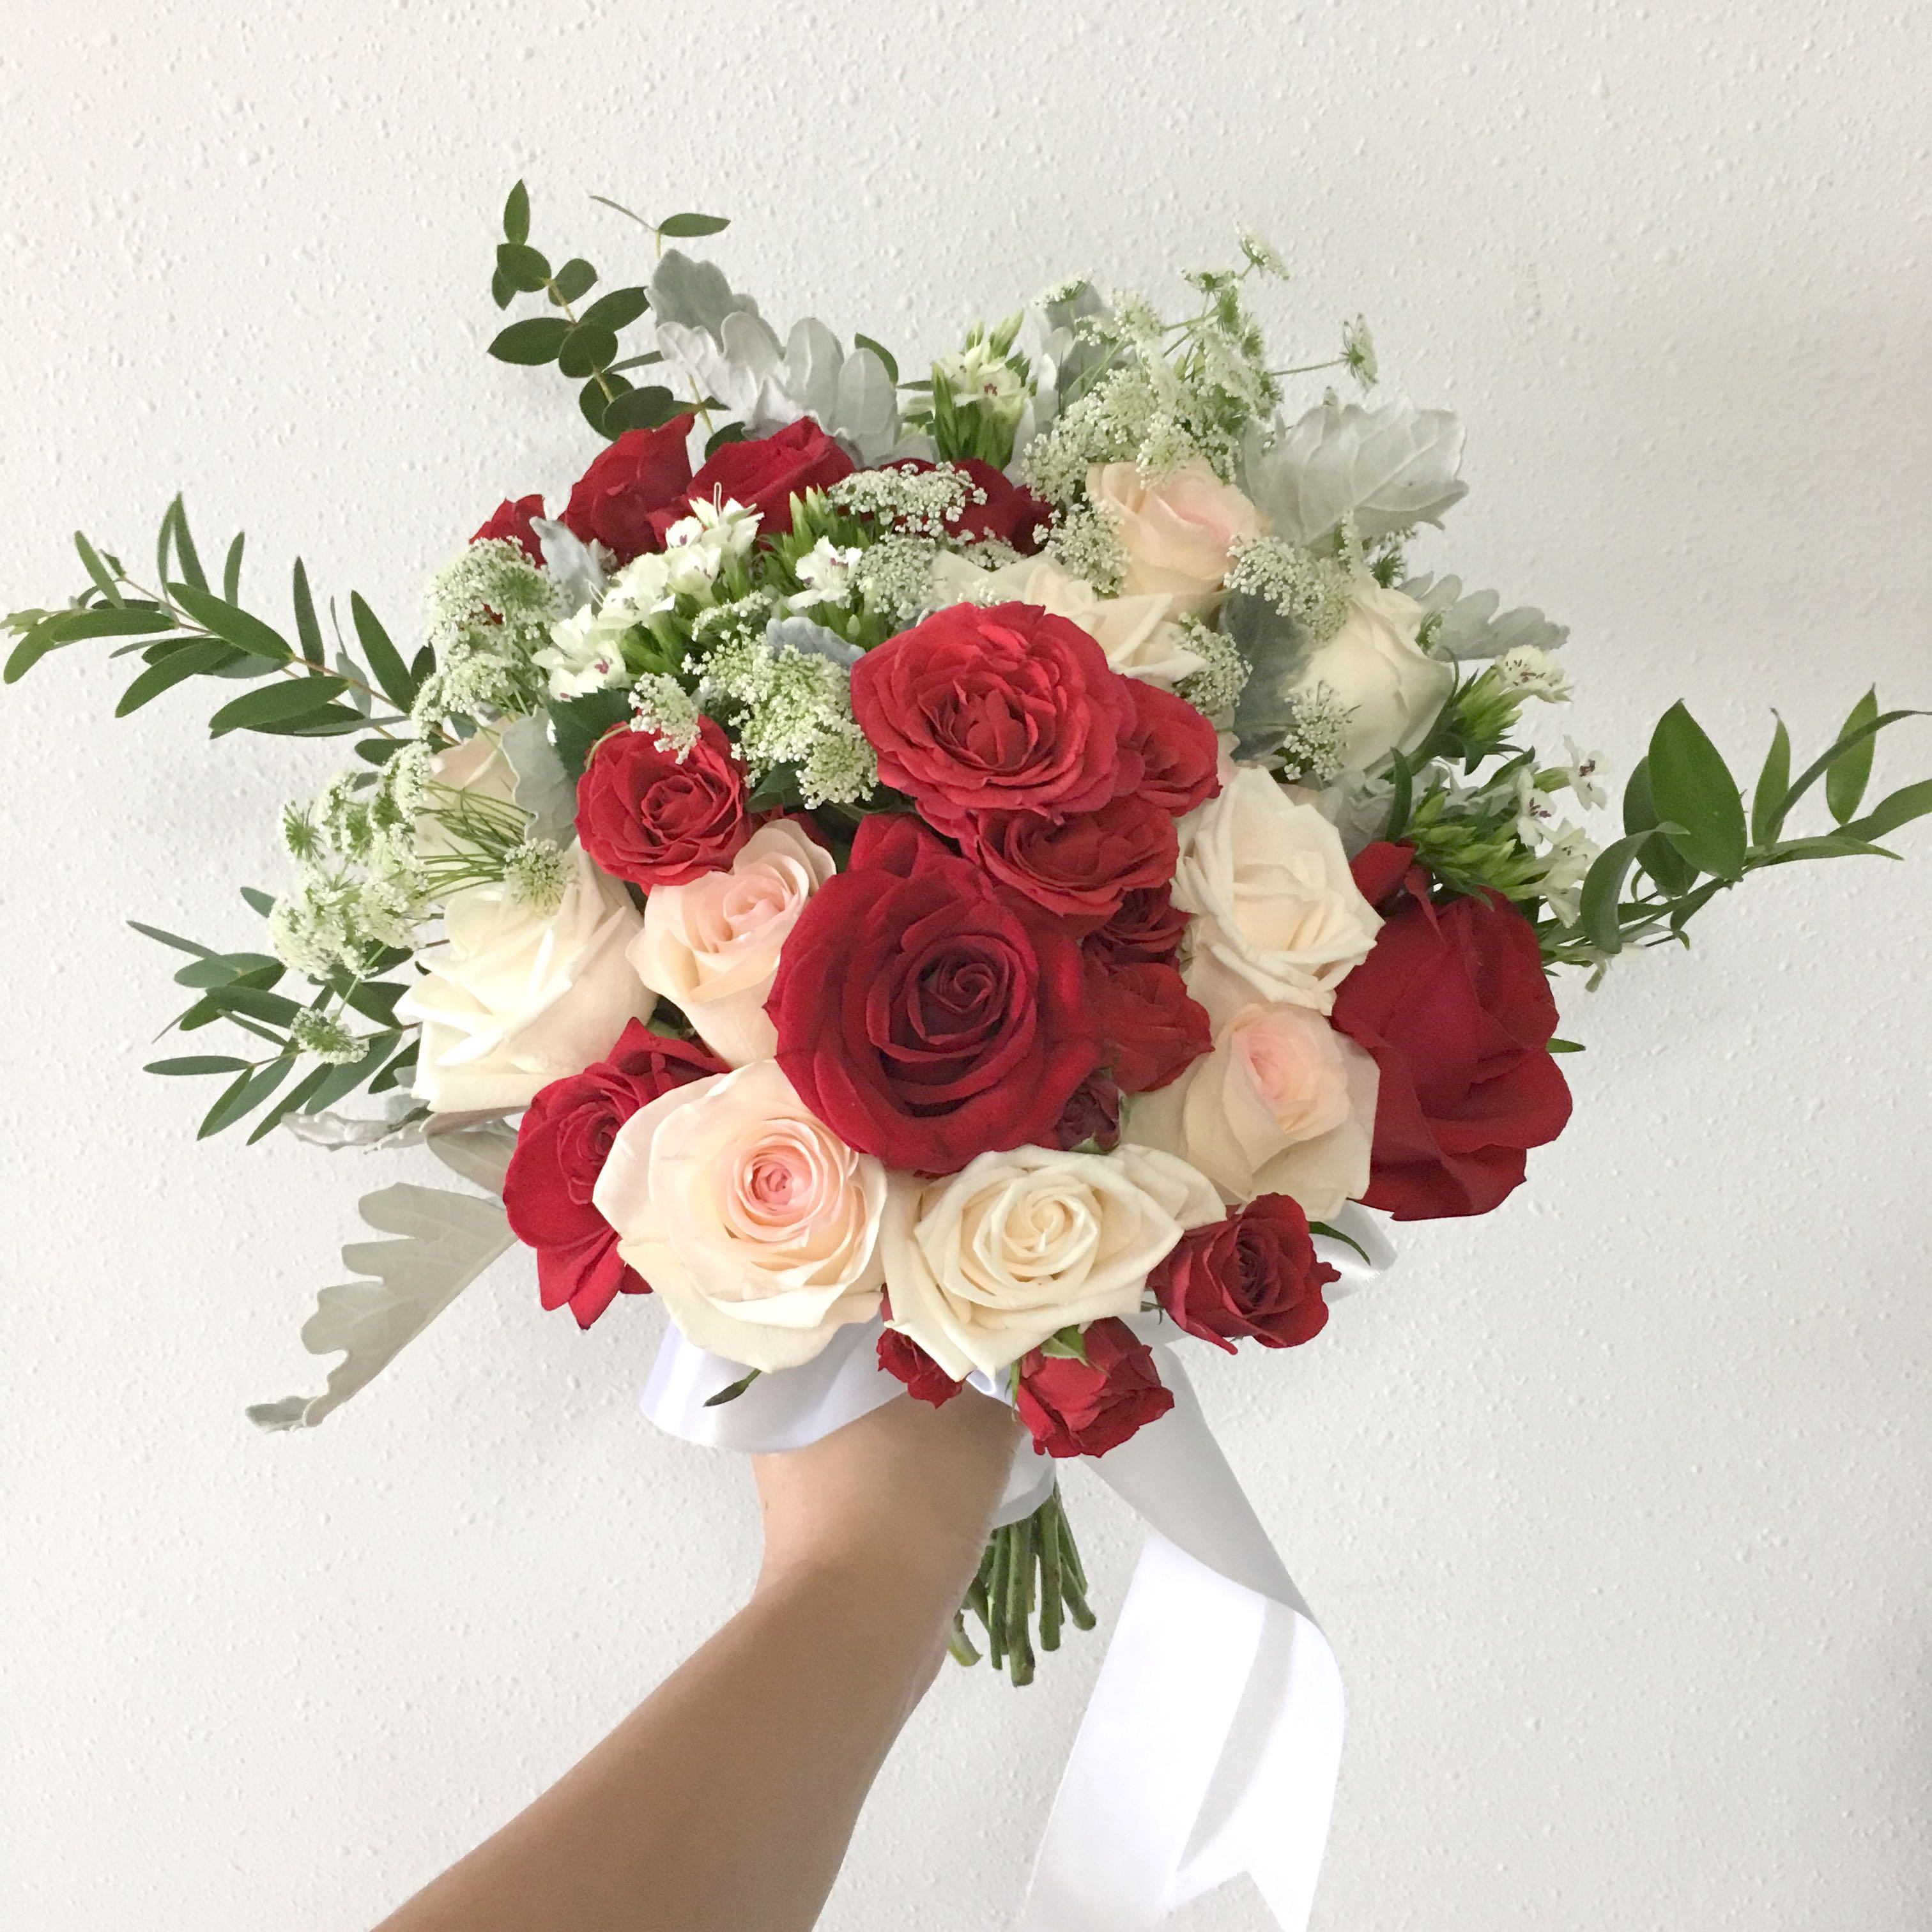 Red Bridal Bouquet In Red Roses With Pastel Pink Wedding Flowers Gardening Flowers Bouquets On Carousell